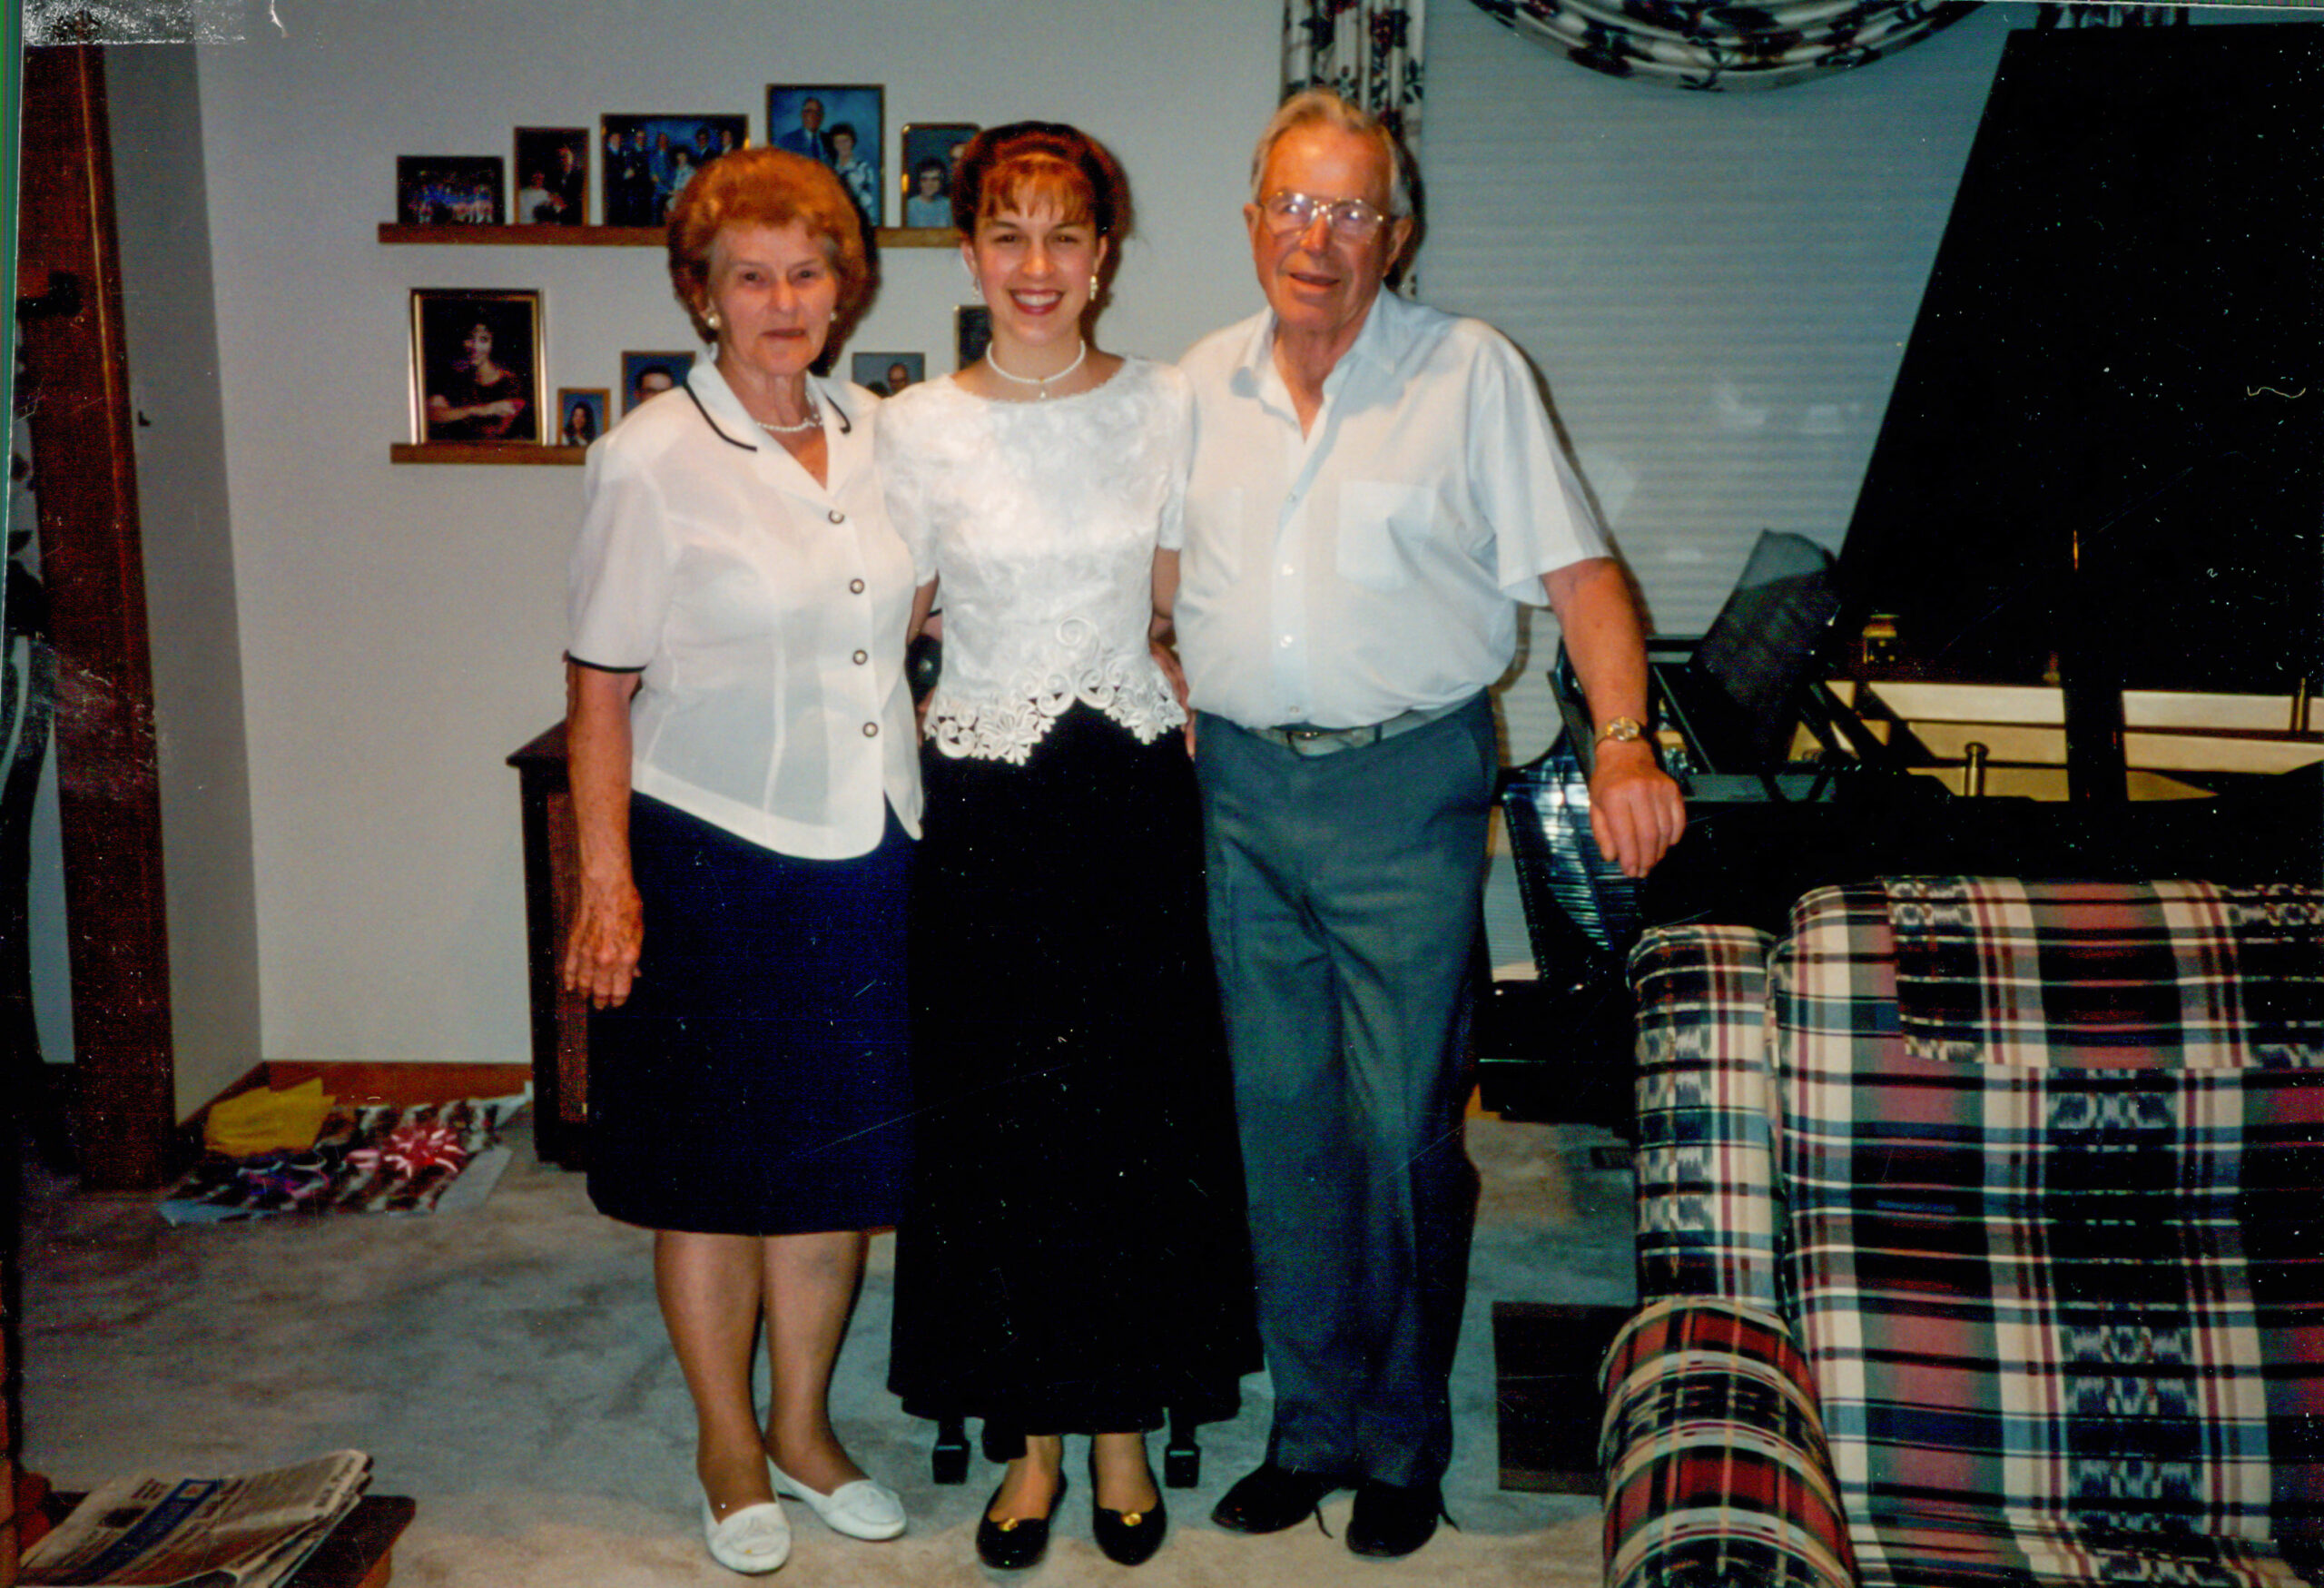 Grandma, Grandpa, and Kristen at her senior graduation